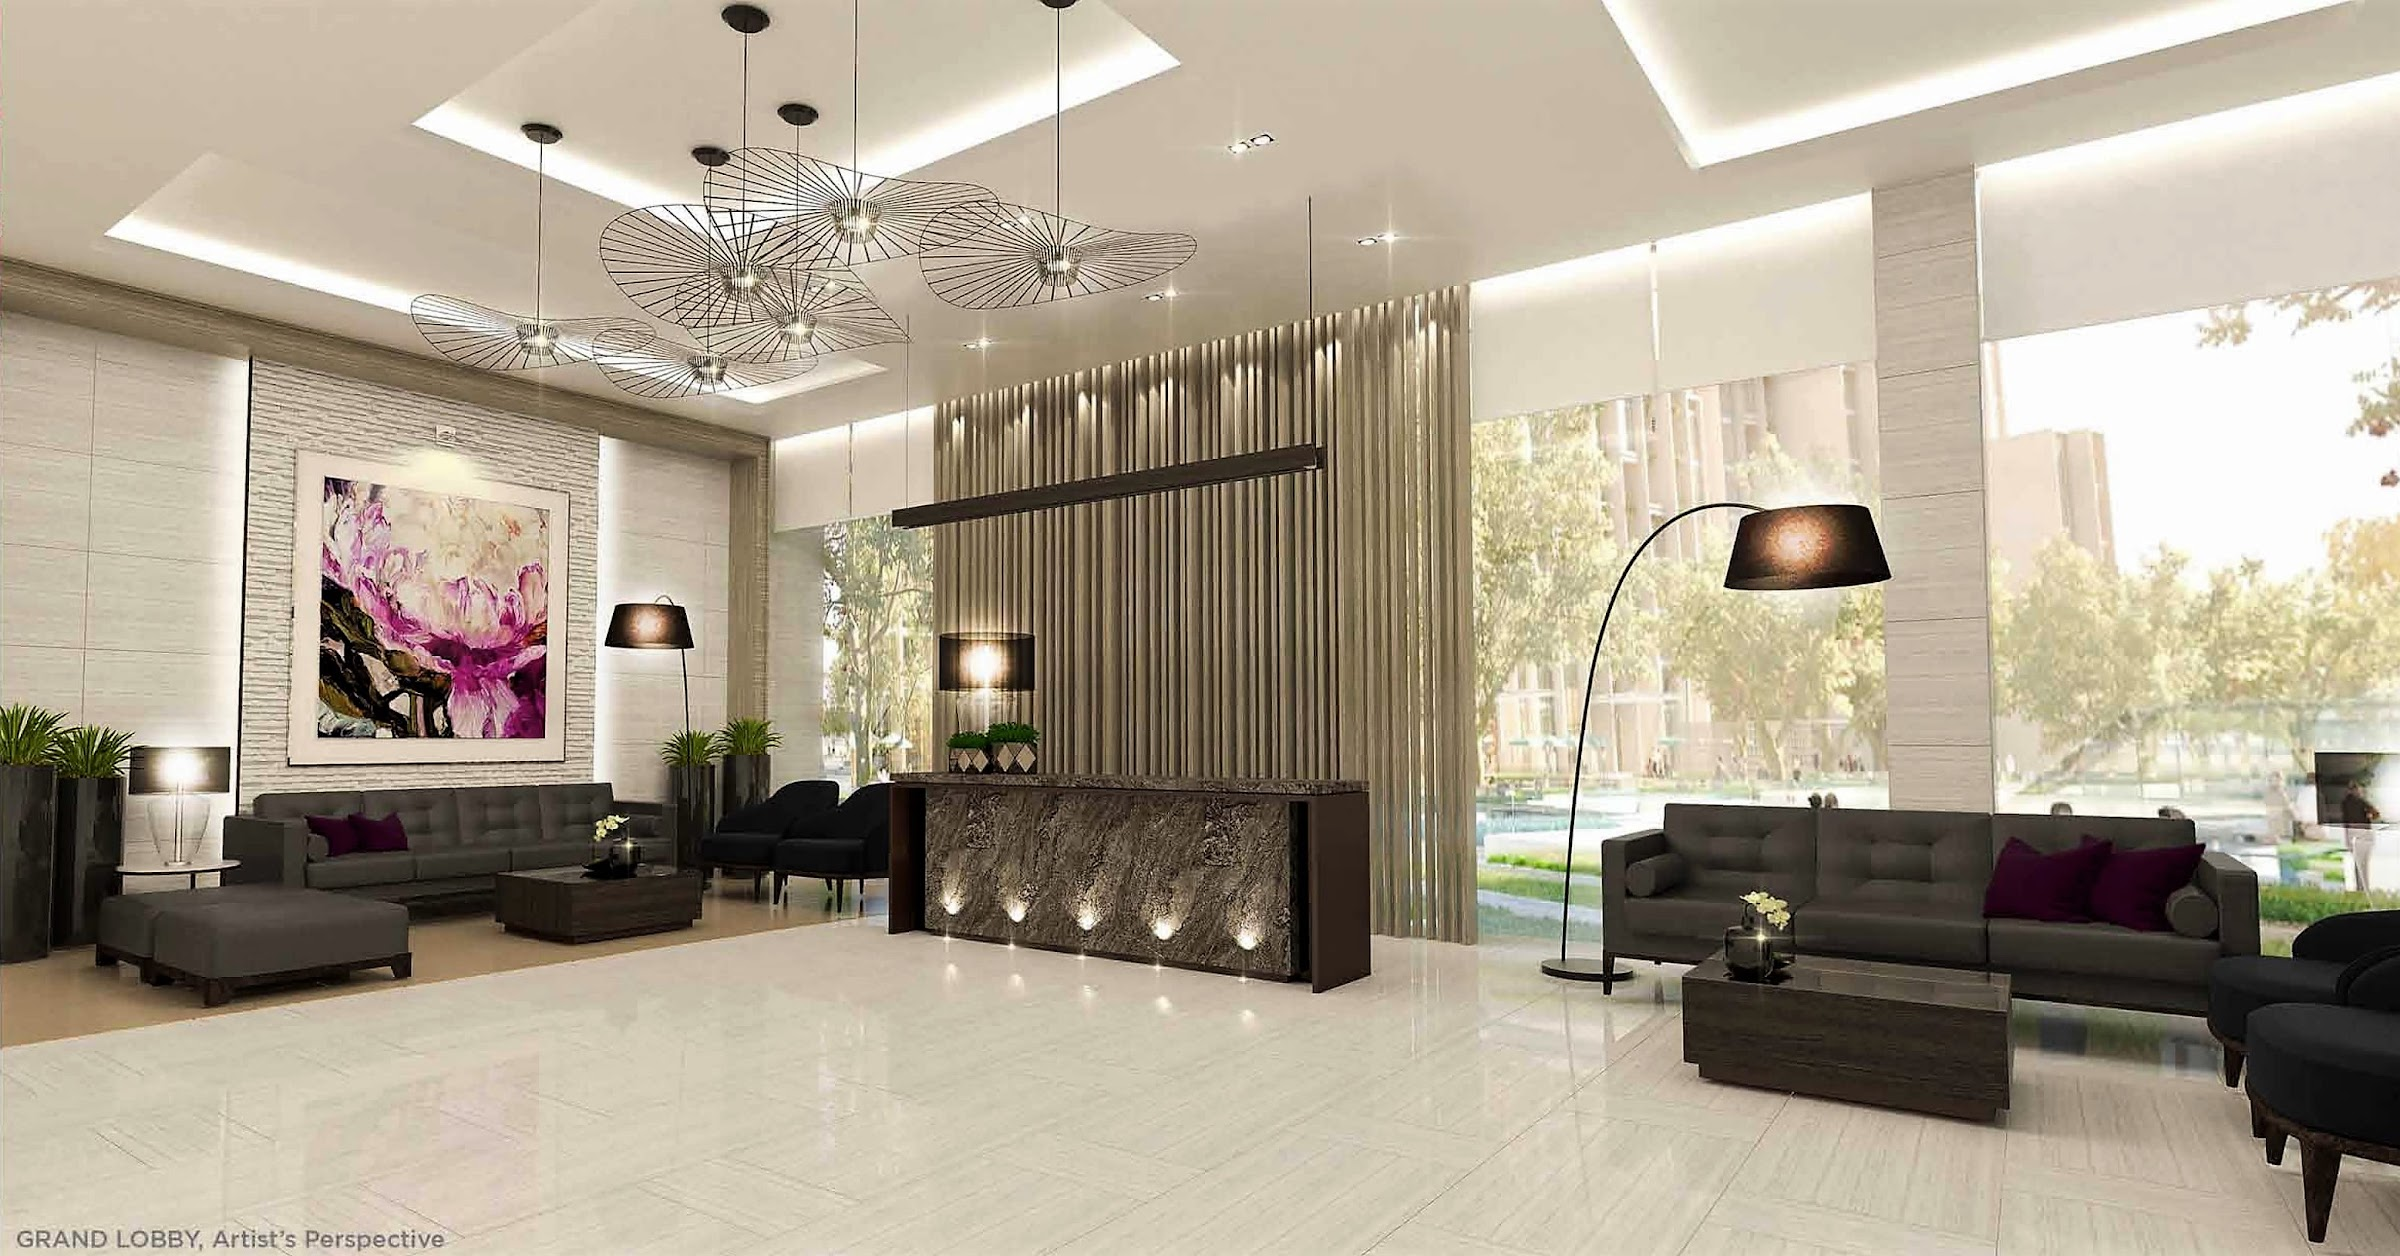 Bloom Residences, Sucat, Paranaque City lounge area